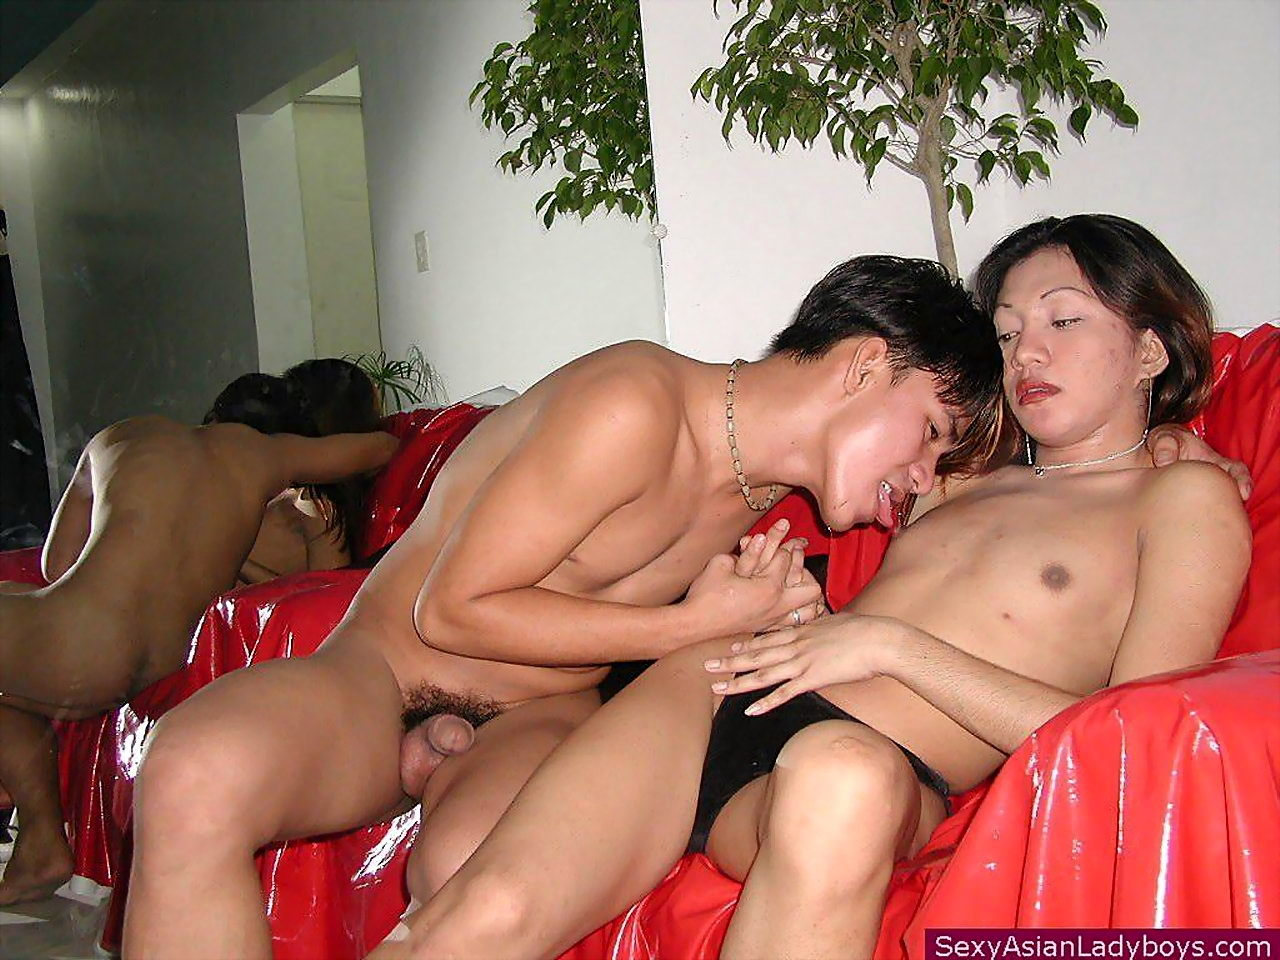 Thai Transexual Having Her Butt Destroyed And Her Face Creamed